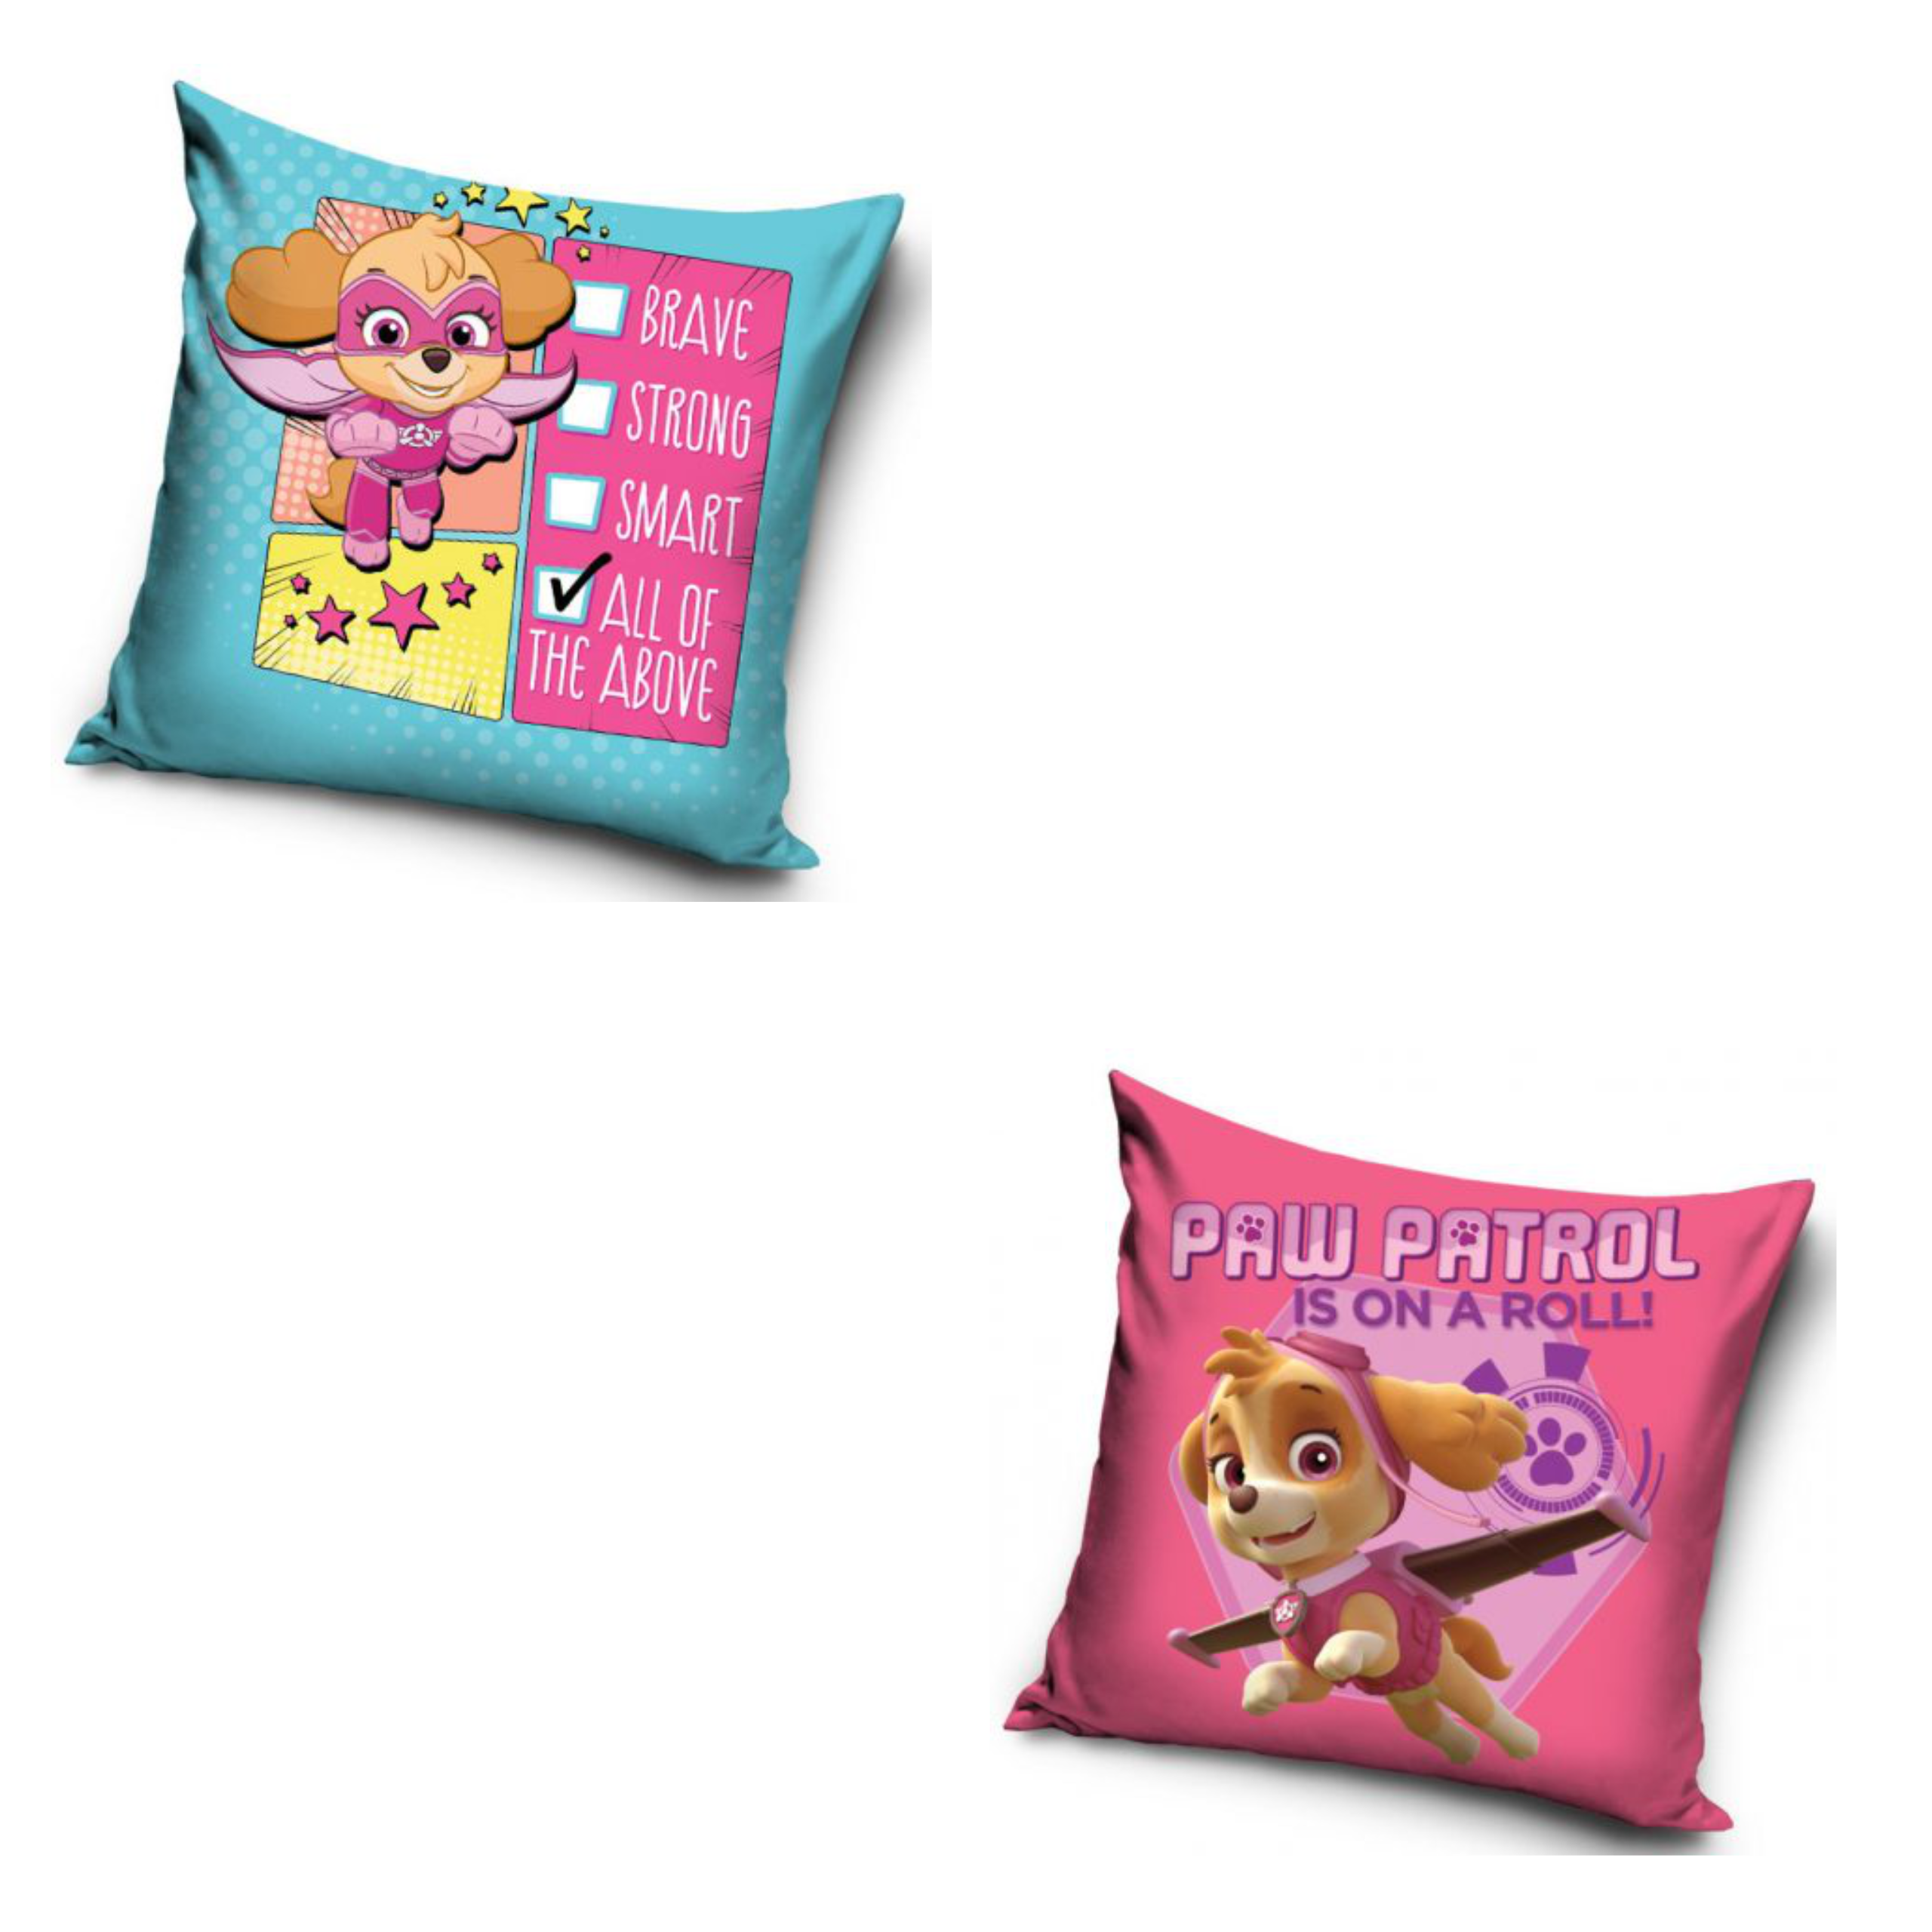 Paw Patrol Checklist And Paw Patrol On A Roll 2 Pack Cushion